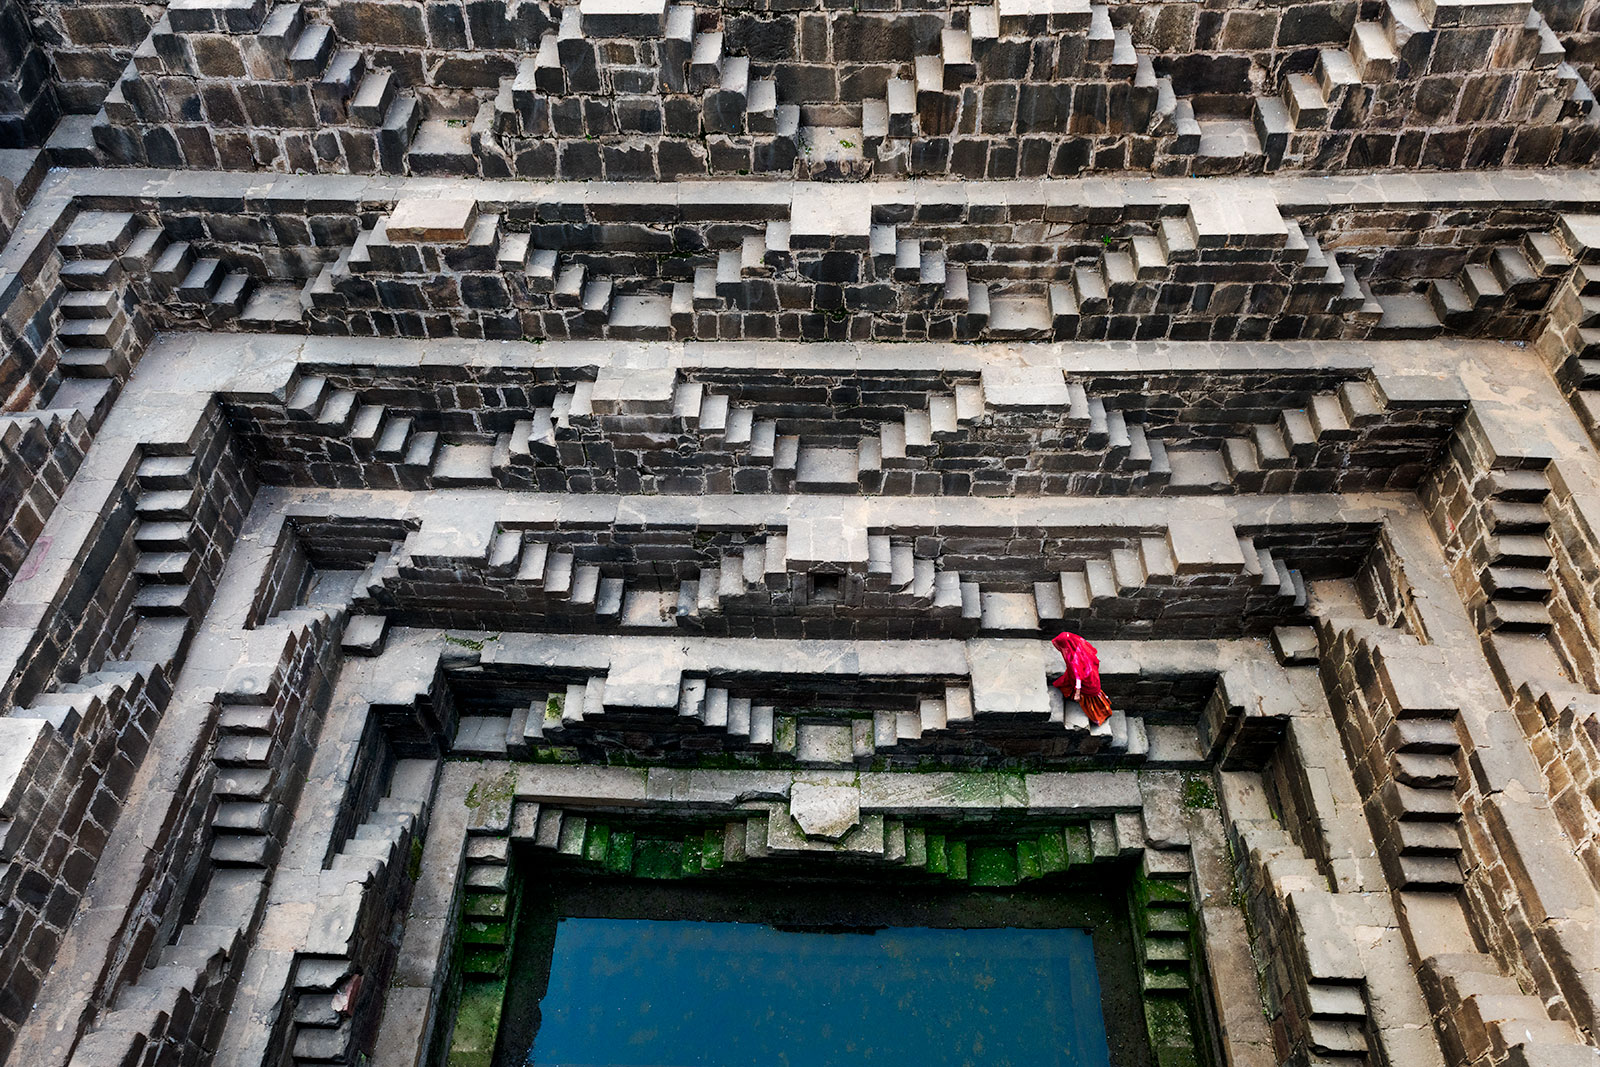 Vacheron-Constantin---Steve-McCurry---Chand-Baori-India-2